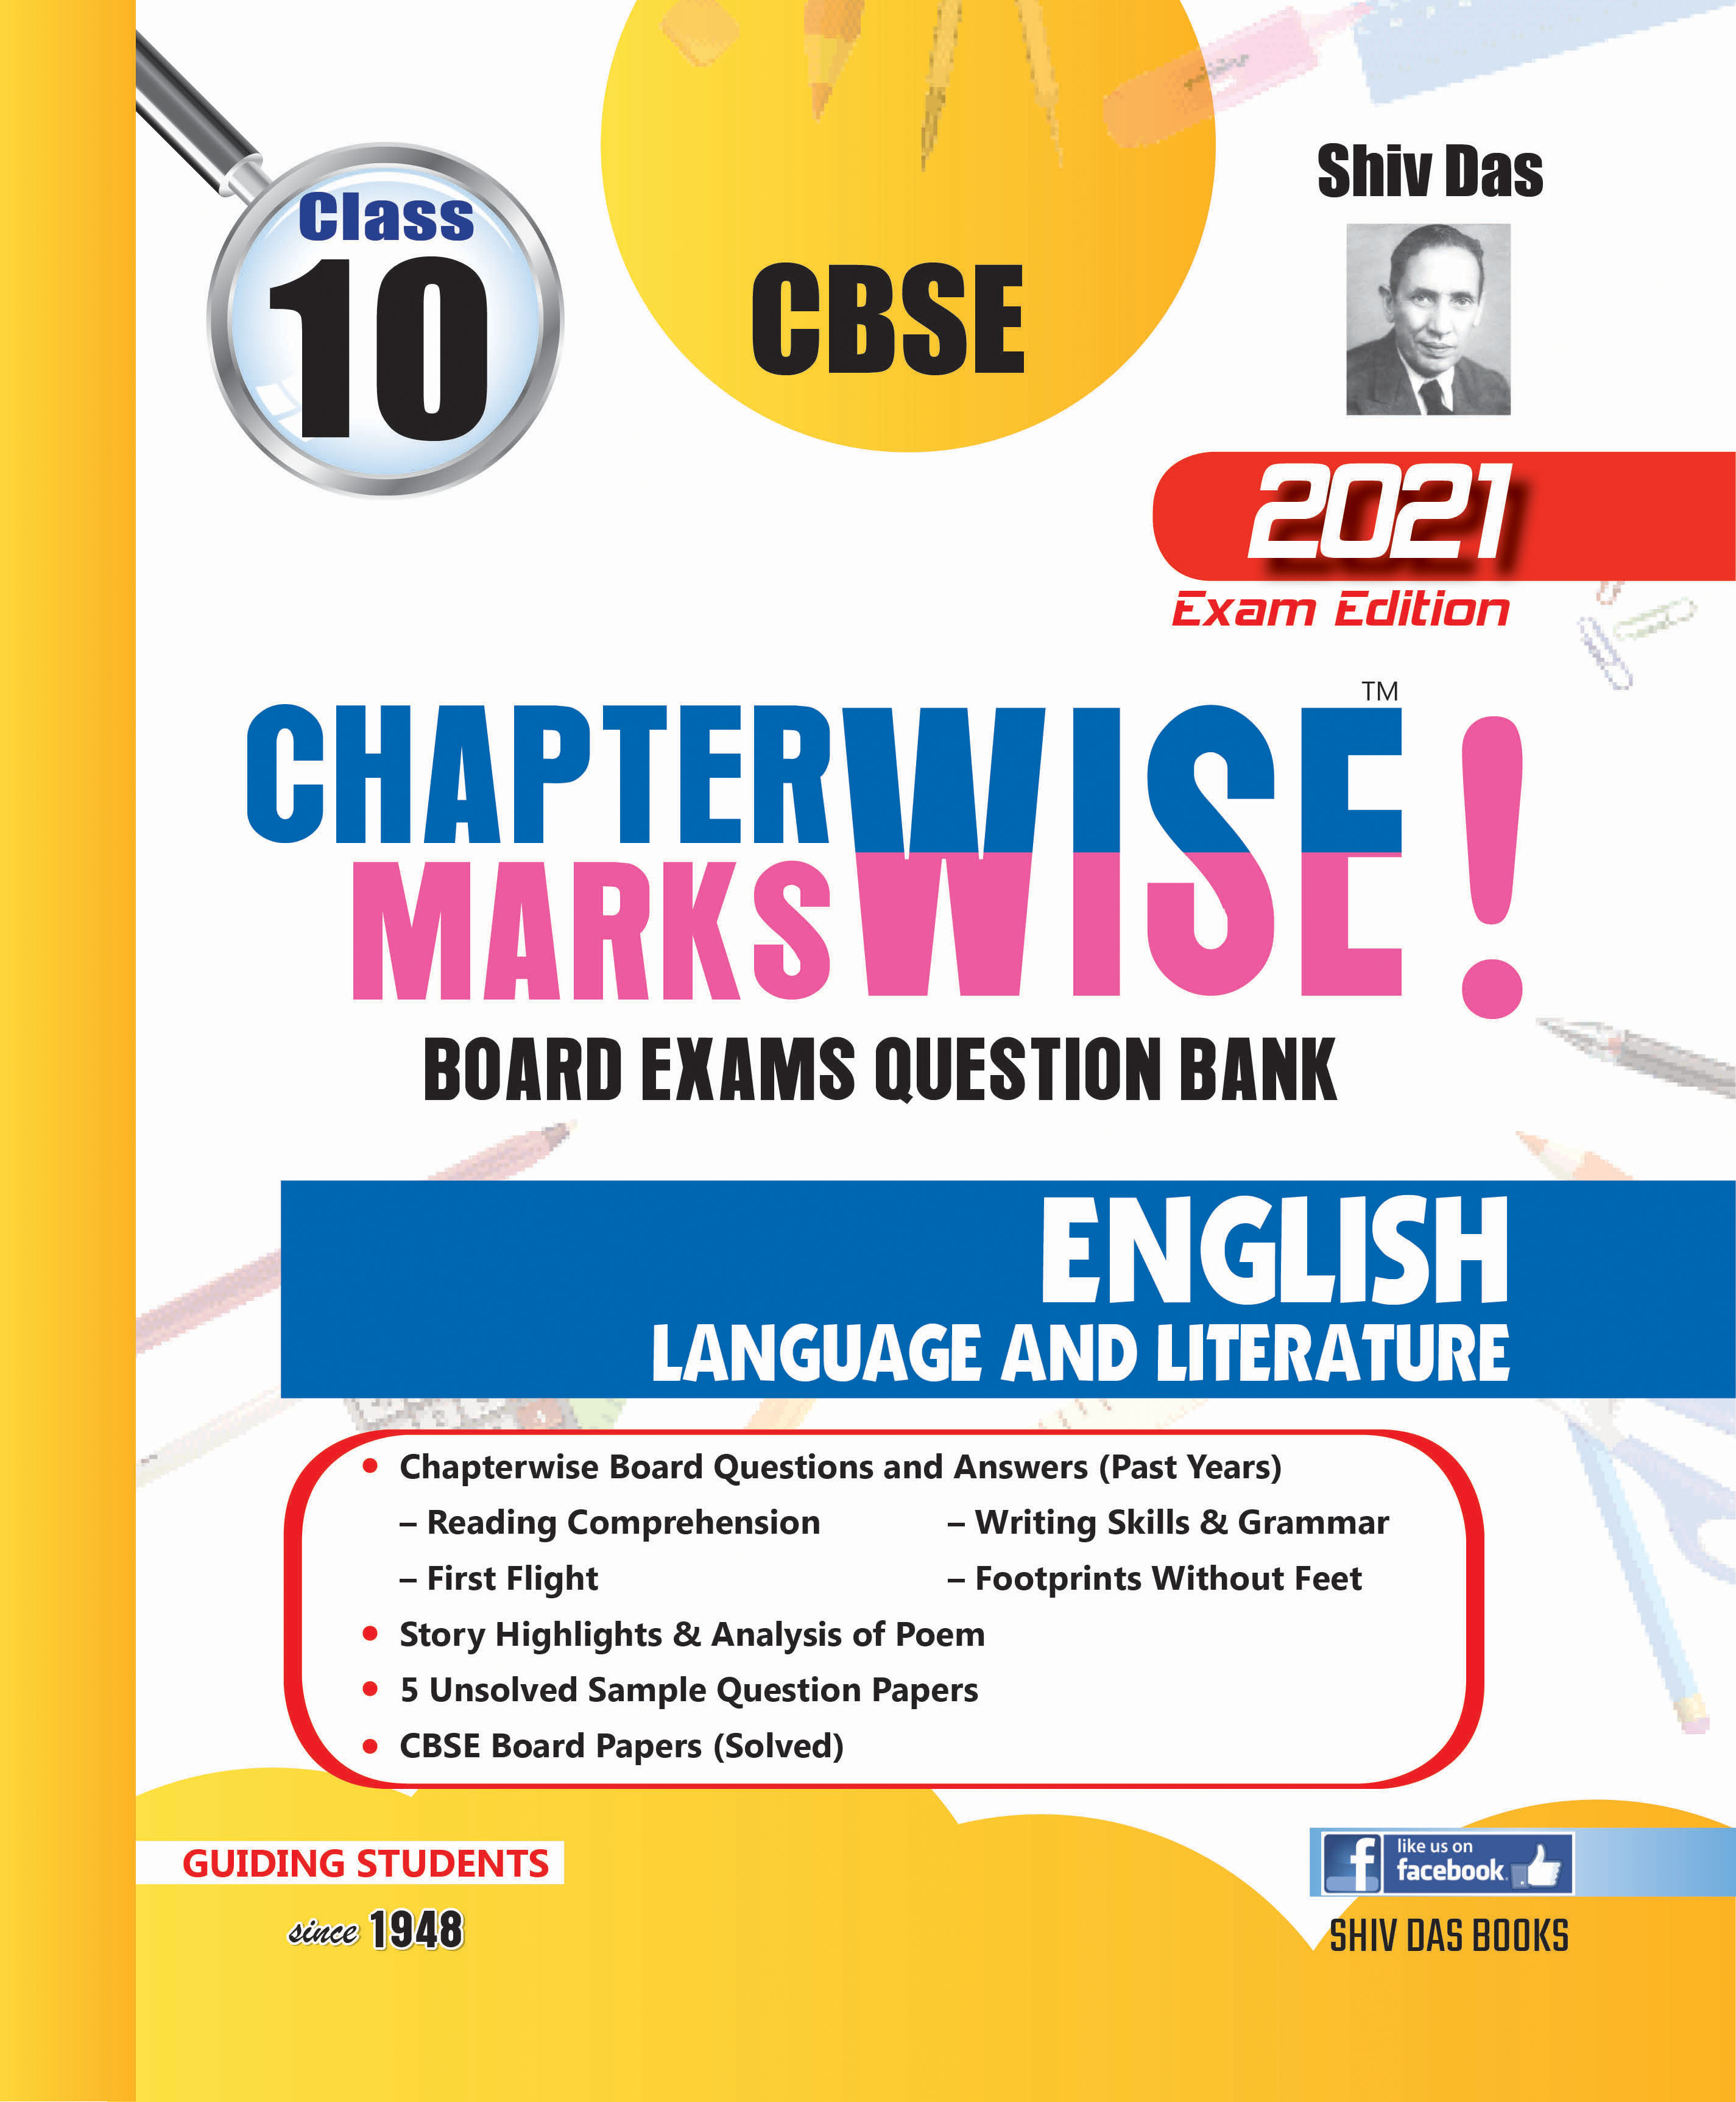 CBSE Chapterwise and Markswise Board Exam Question Bank By SHIVDAS for Class 10 English Language and Literature (2021 Board Exam Edition)